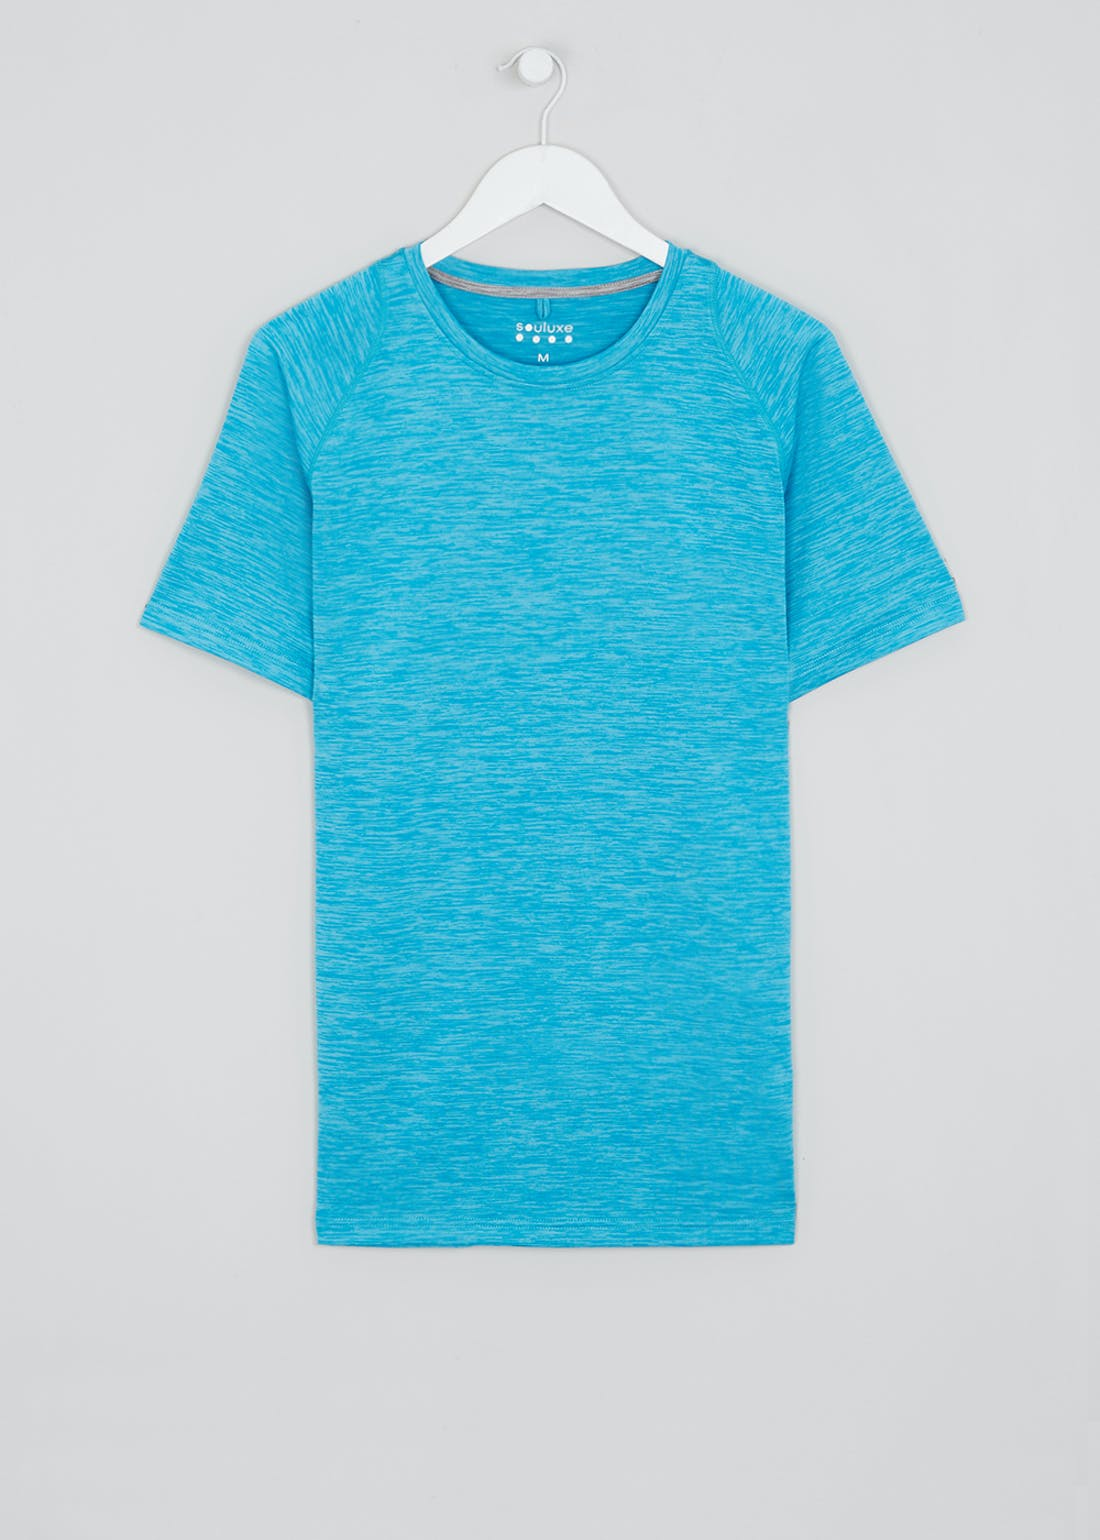 Souluxe Blue Basic Gym Top